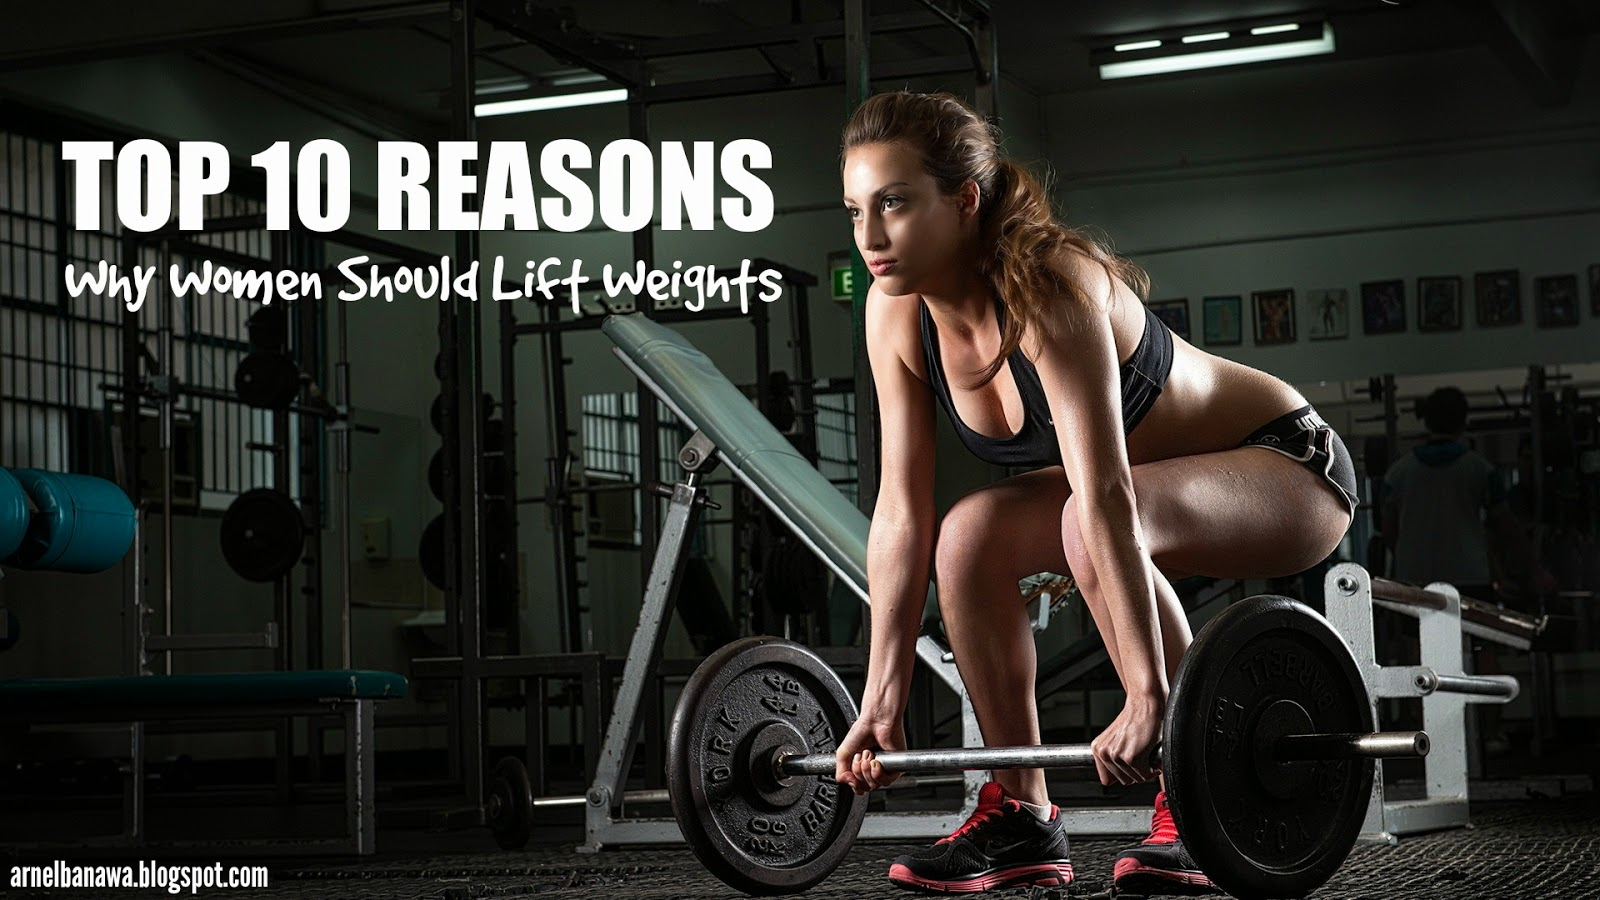 Top 10 Reasons Why Women Should Lift Weights - 21 Day Fix Extreme